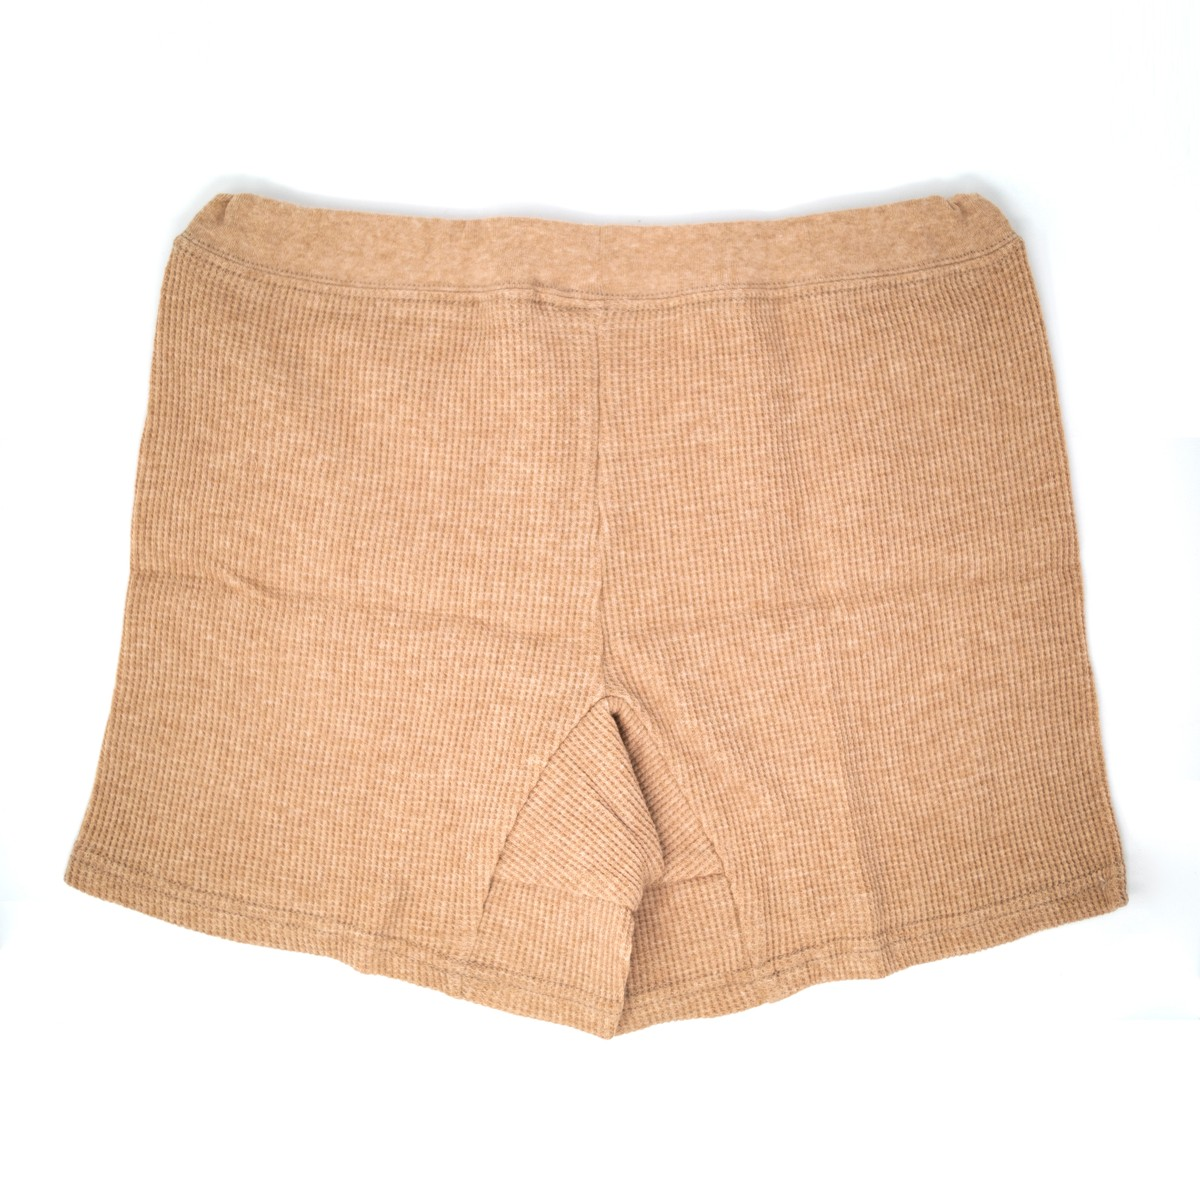 Photo of Japanese Waffle Cotton Boxers: Womens